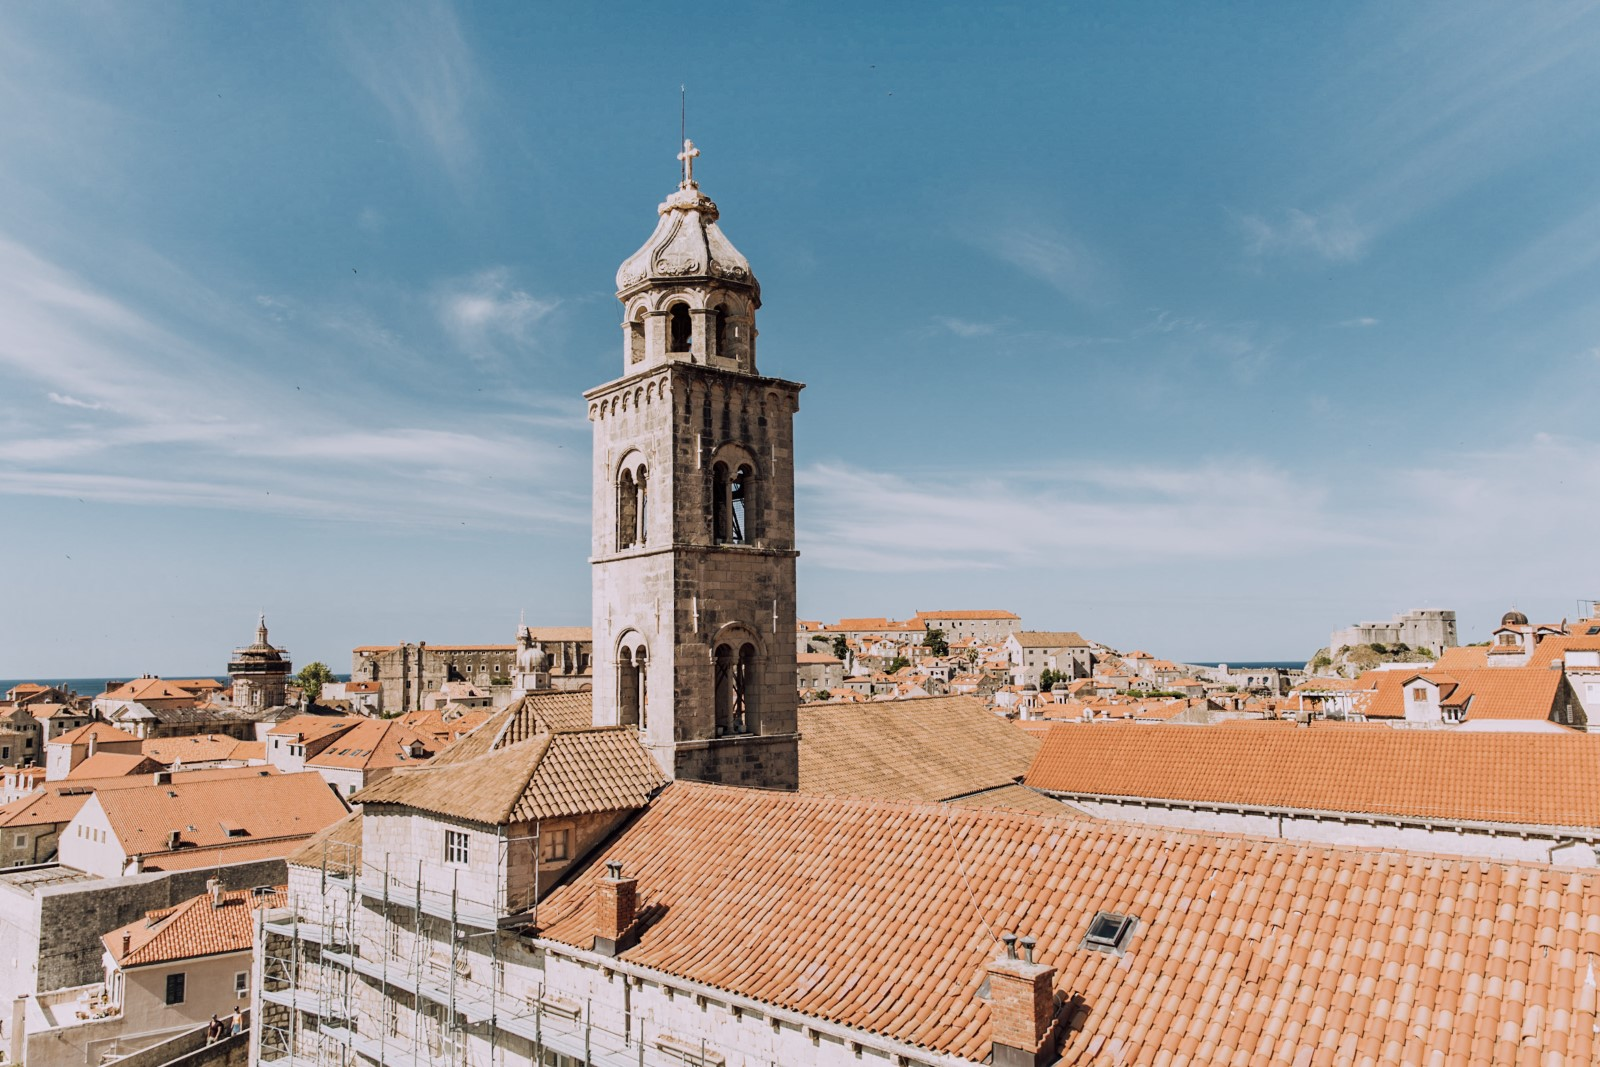 Orange roofs and bell tower in Dubrovnik